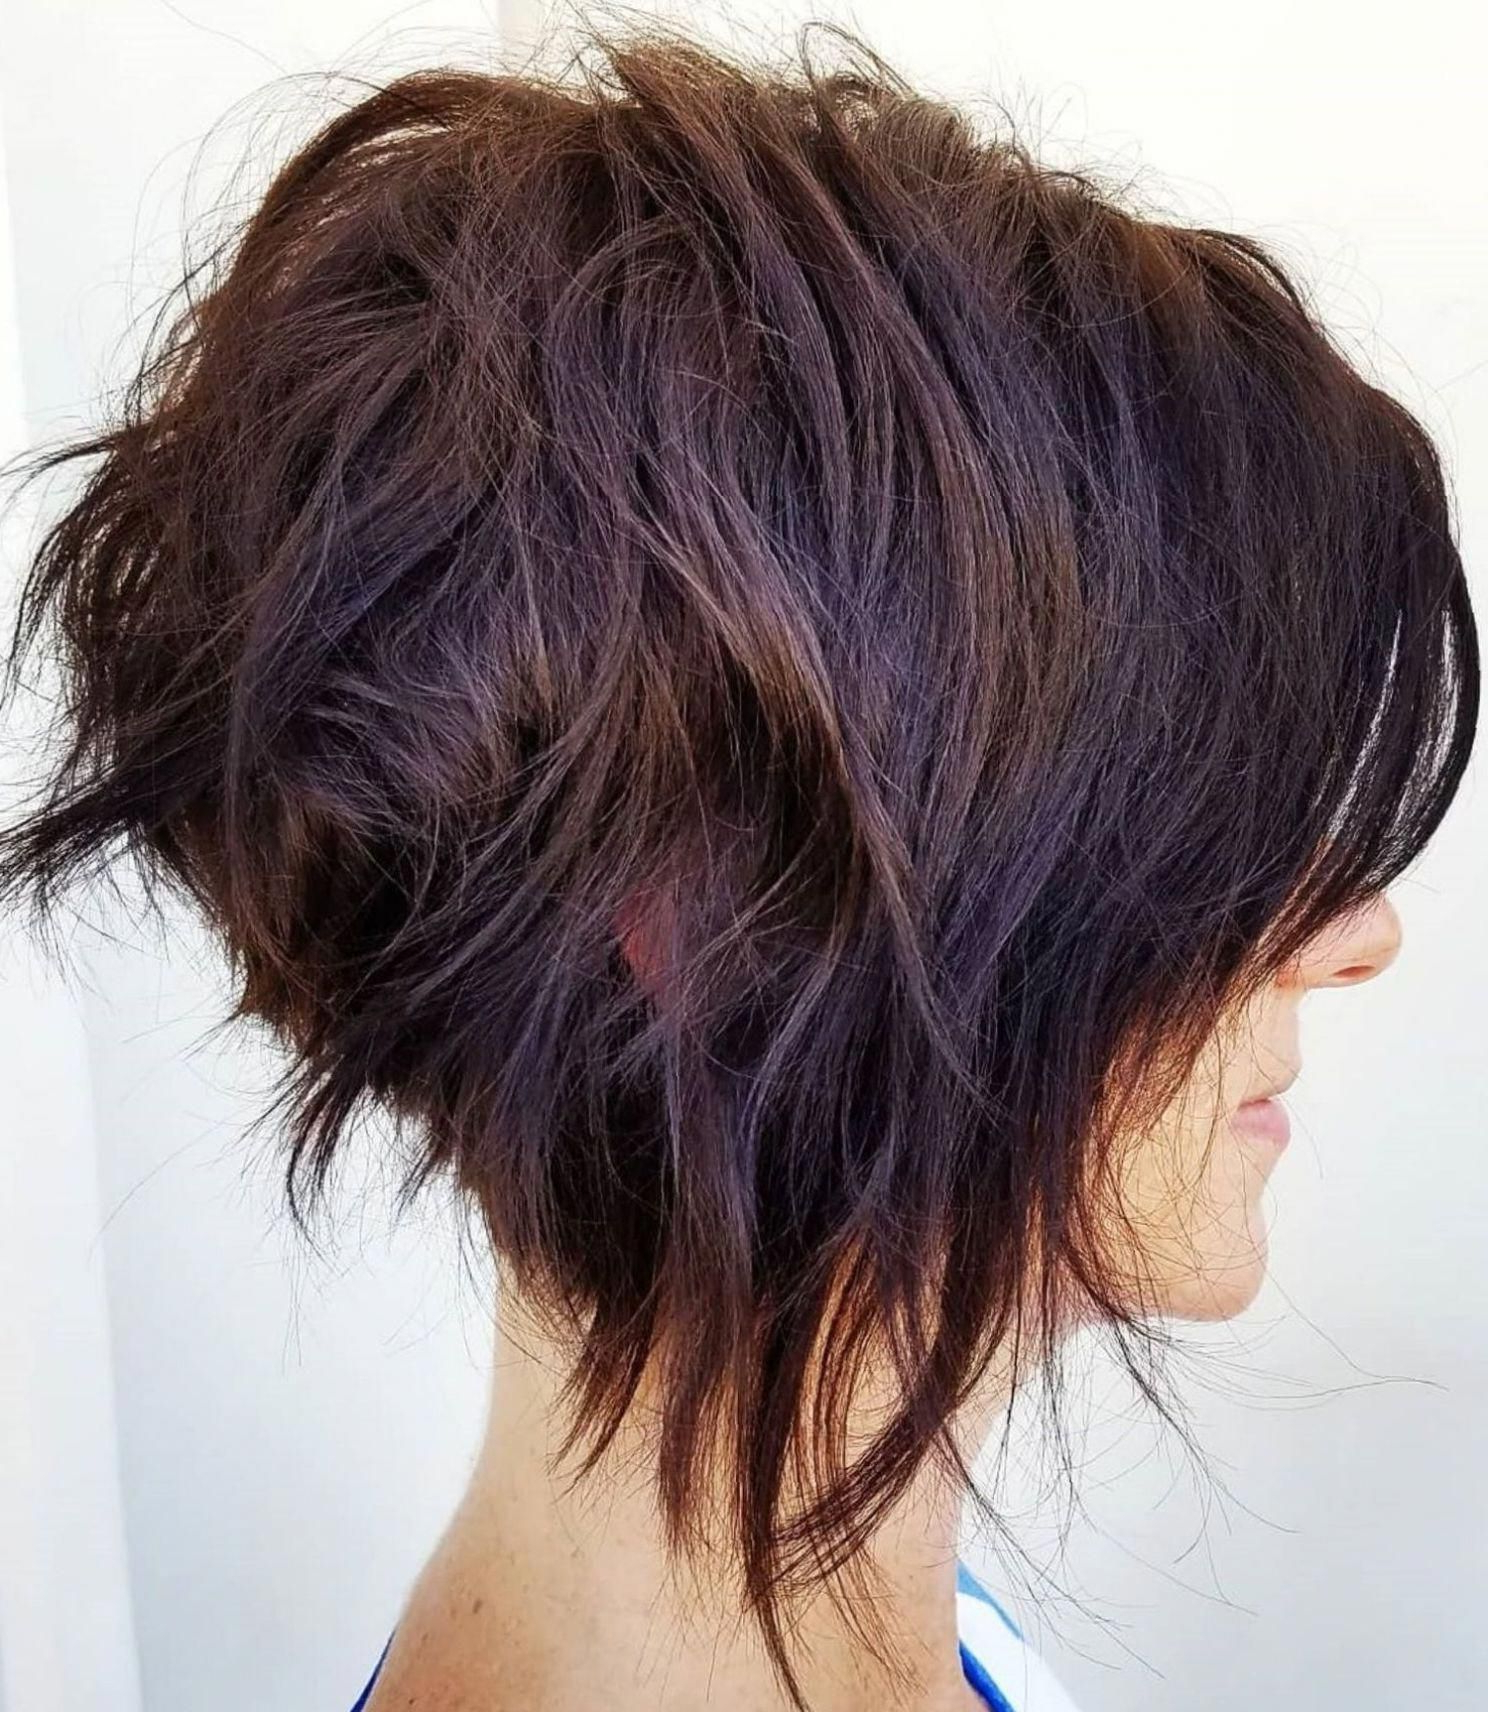 Latest Marvelous Mauve Shaggy Bob Hairstyles Throughout Uneven Tousled Burgundy Brown Bob (View 12 of 20)